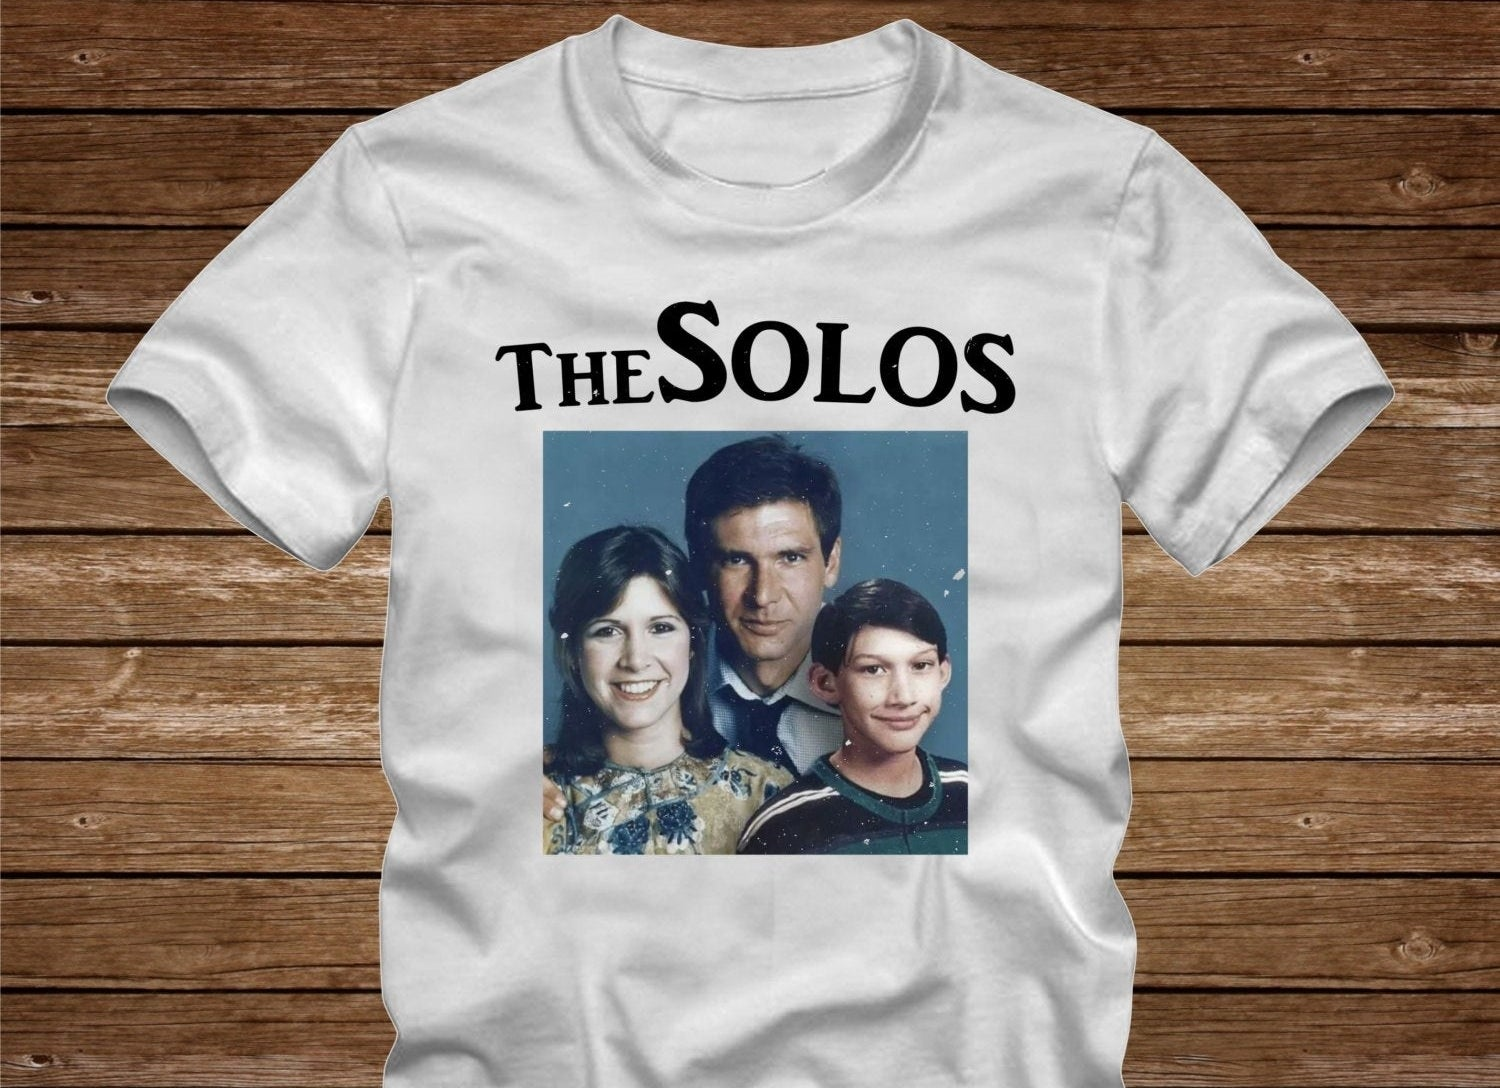 a white tee with a family photo of the solo family